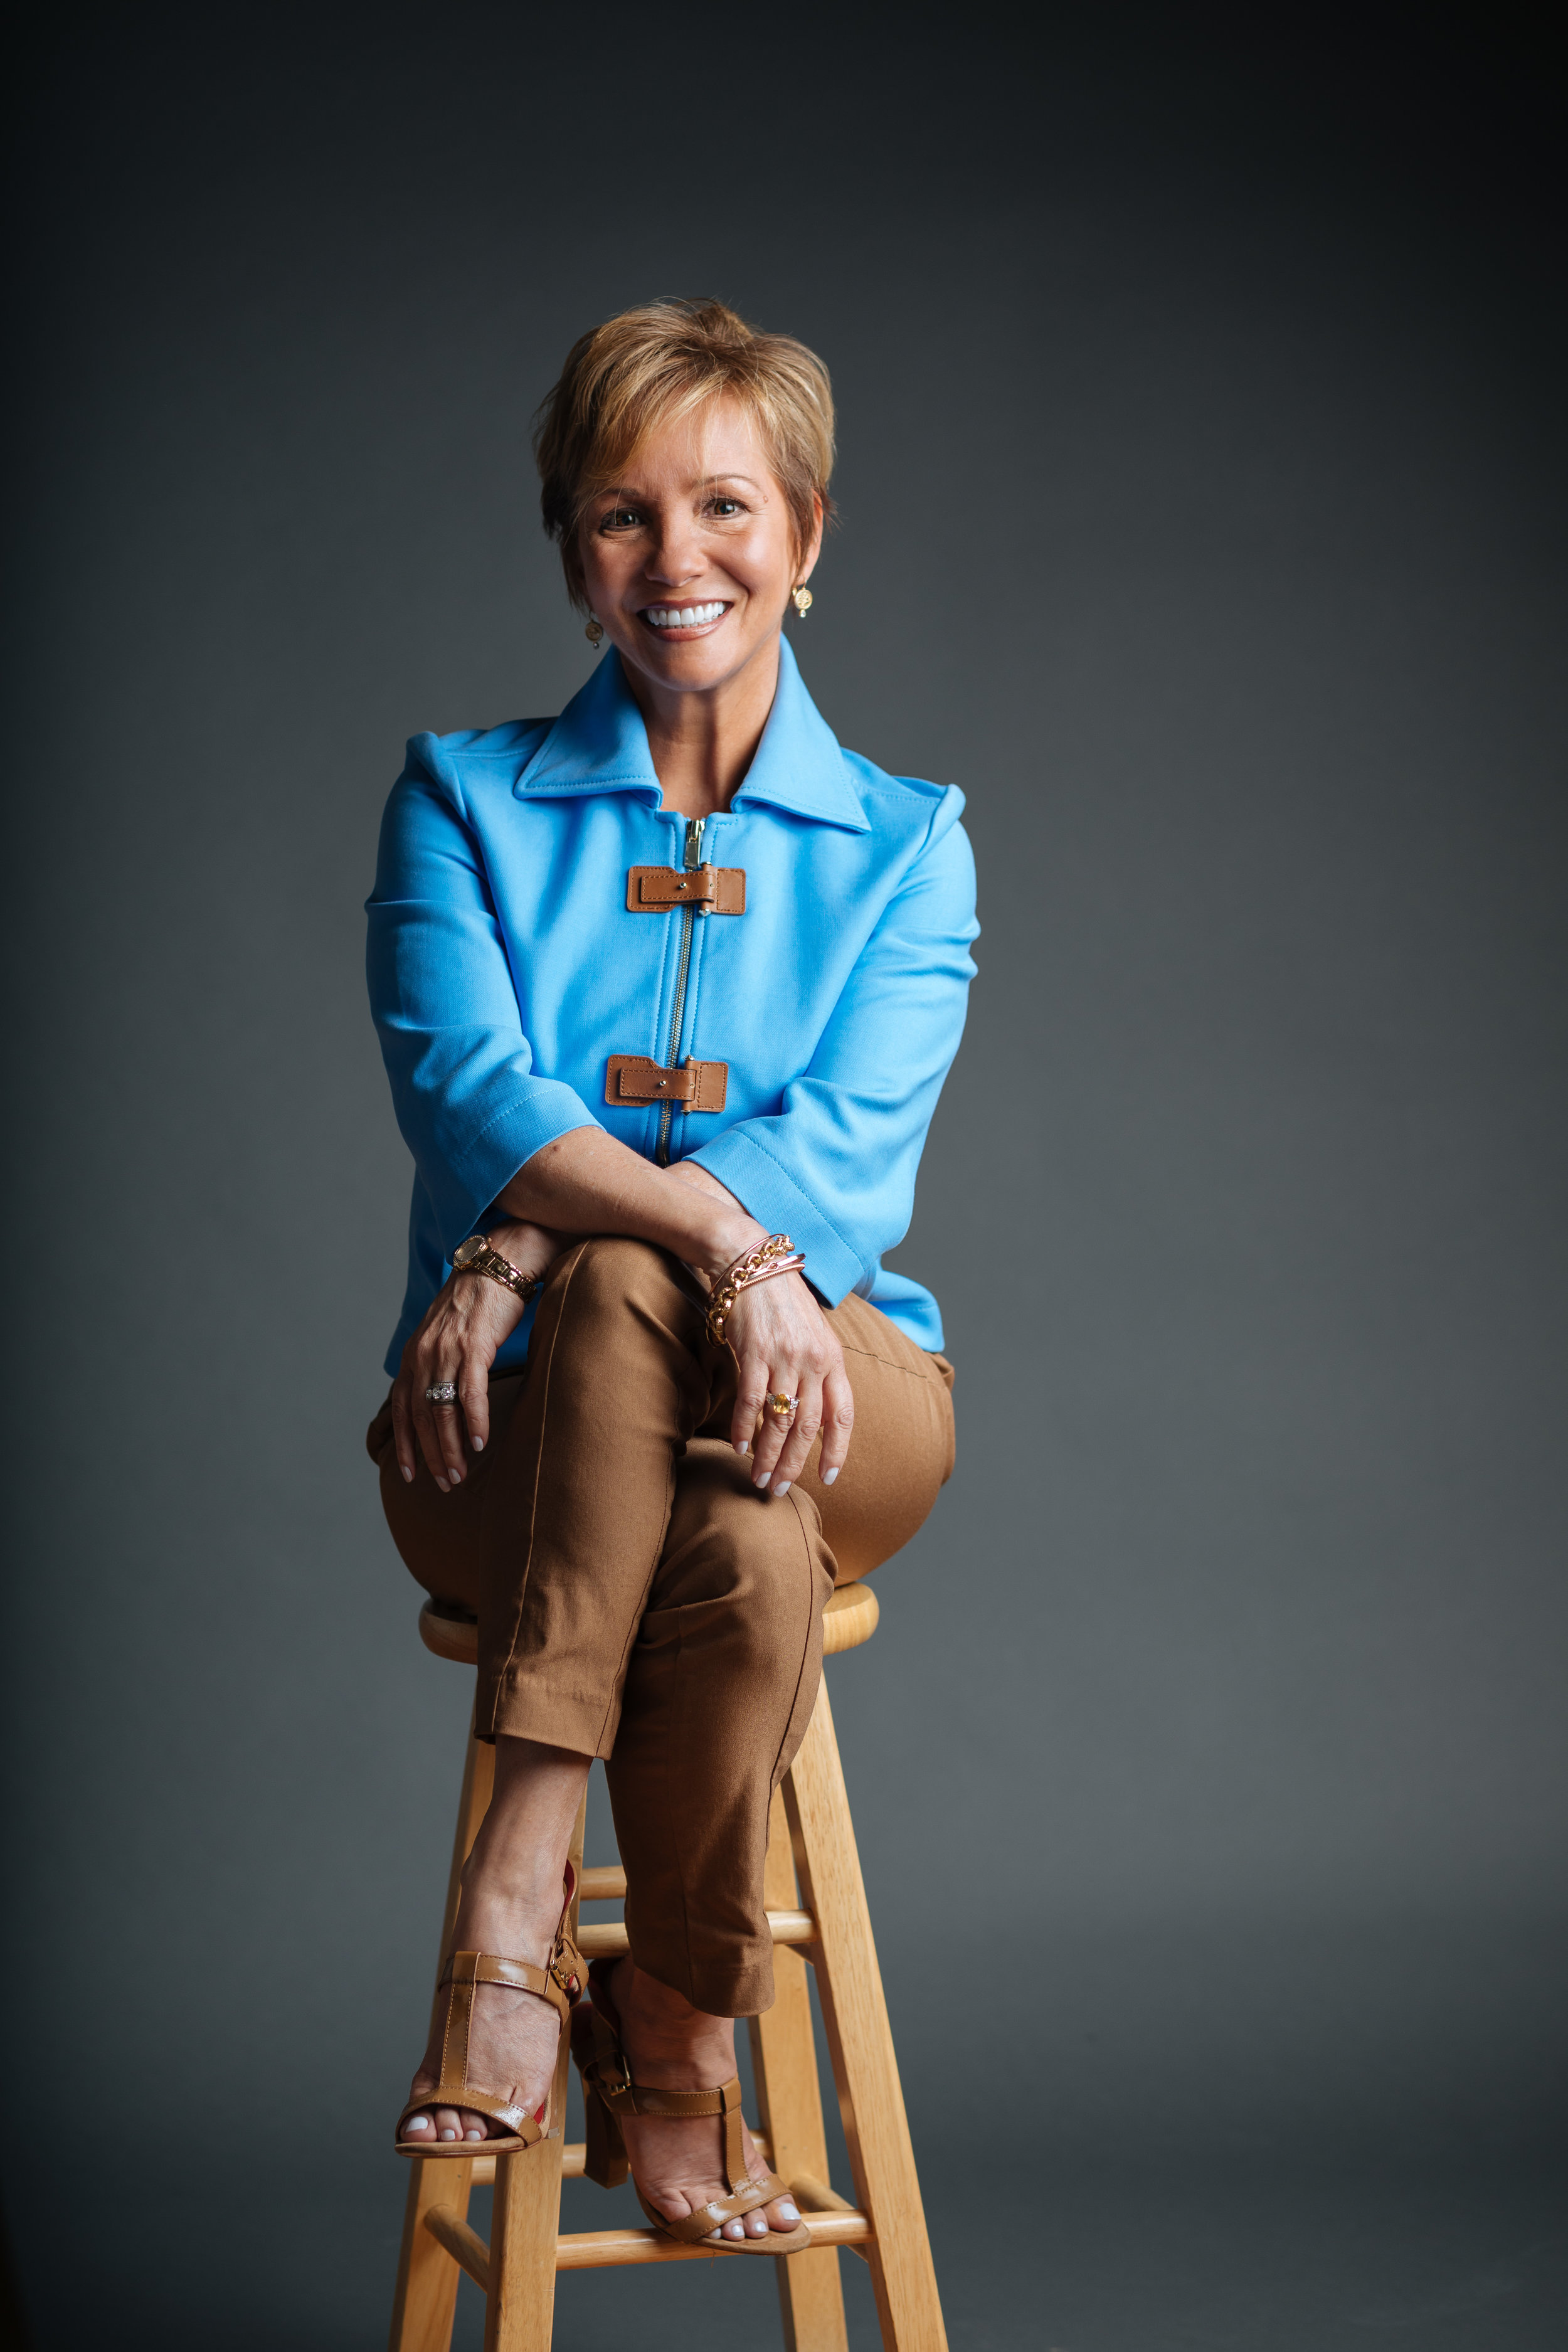 Gina Crumbliss - President & CEO of Chattanooga Area Food Bank